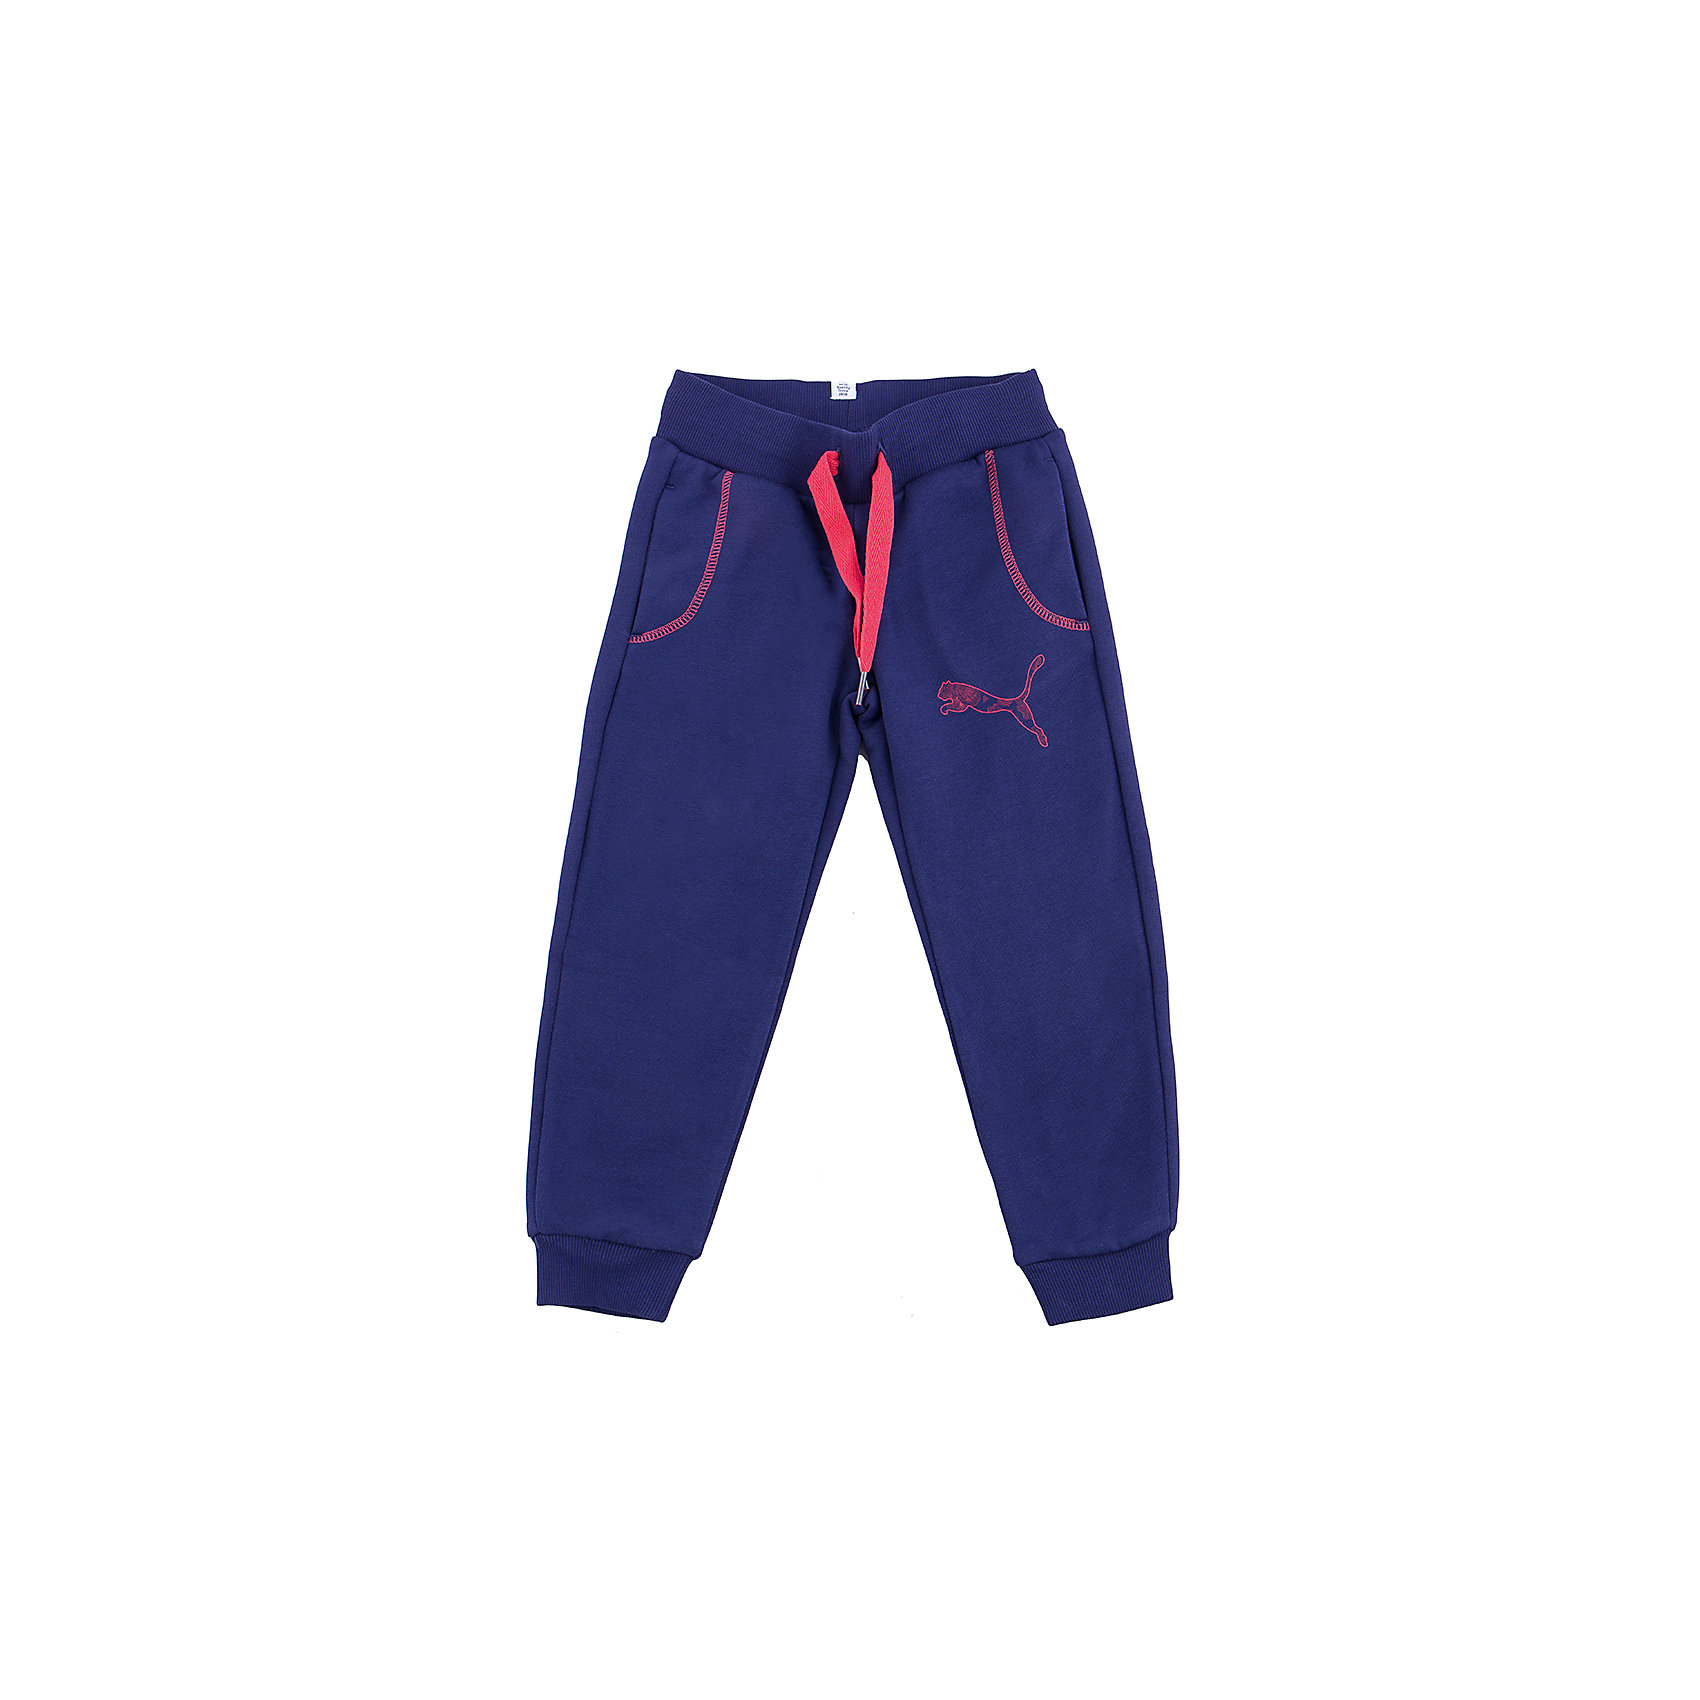 Брюки для девочки FUN Graphic ESS Sweat Pants PUMA